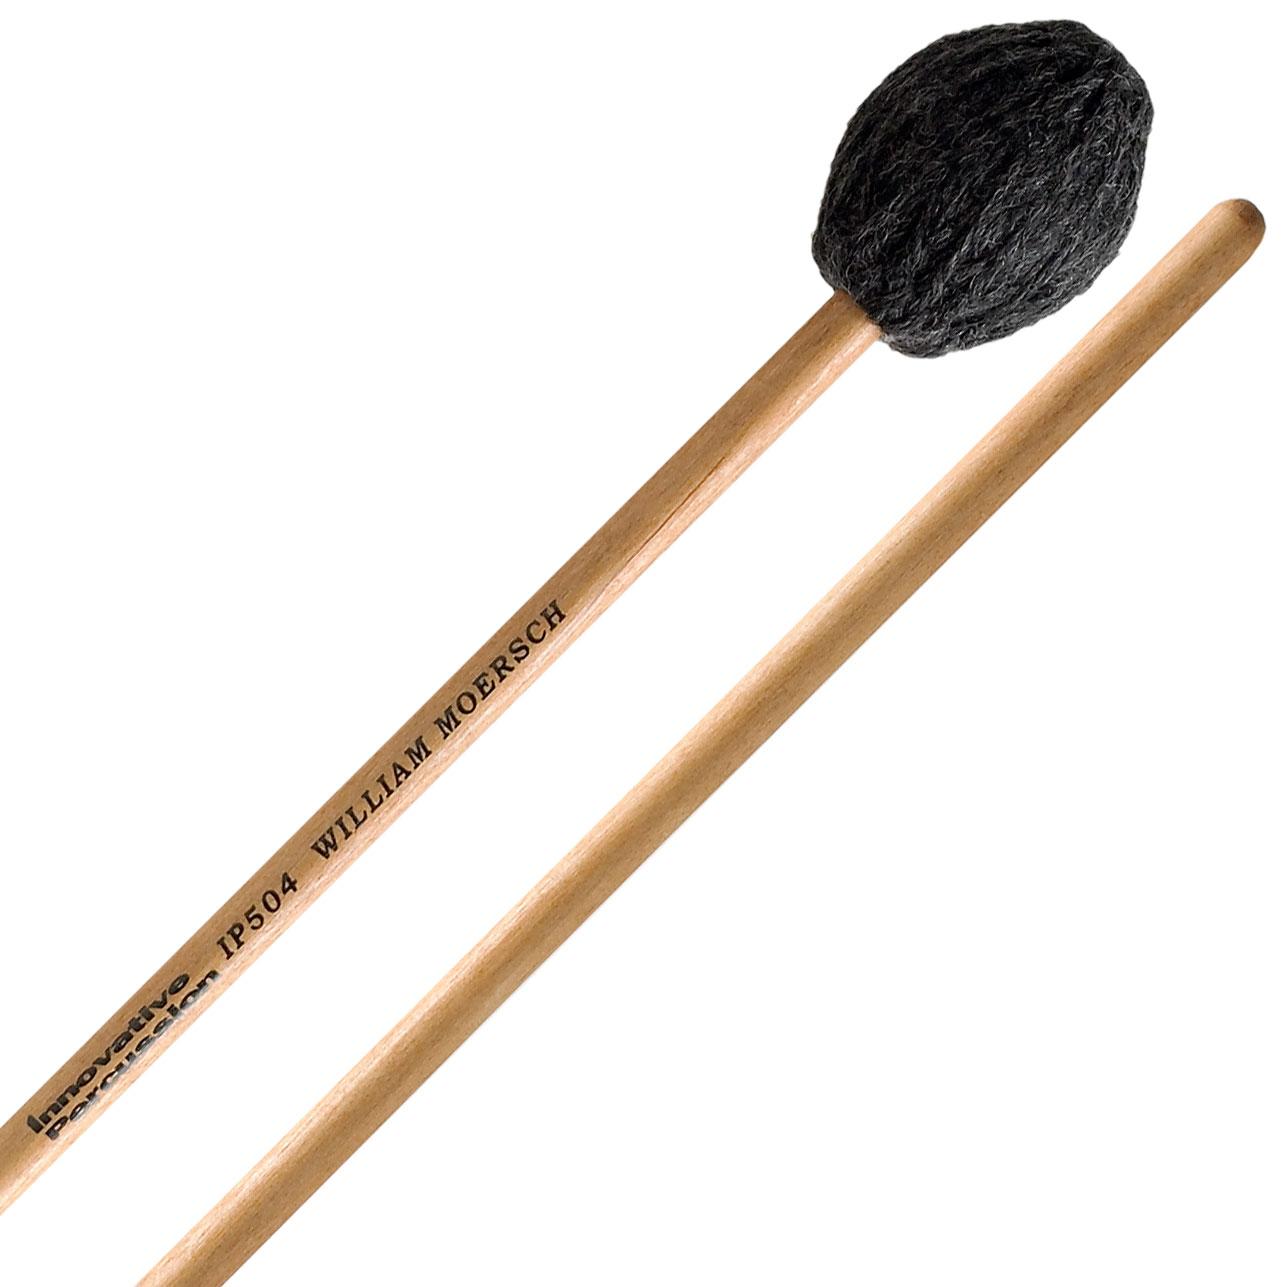 Innovative Percussion William Moersch Signature Hard Marimba Mallets